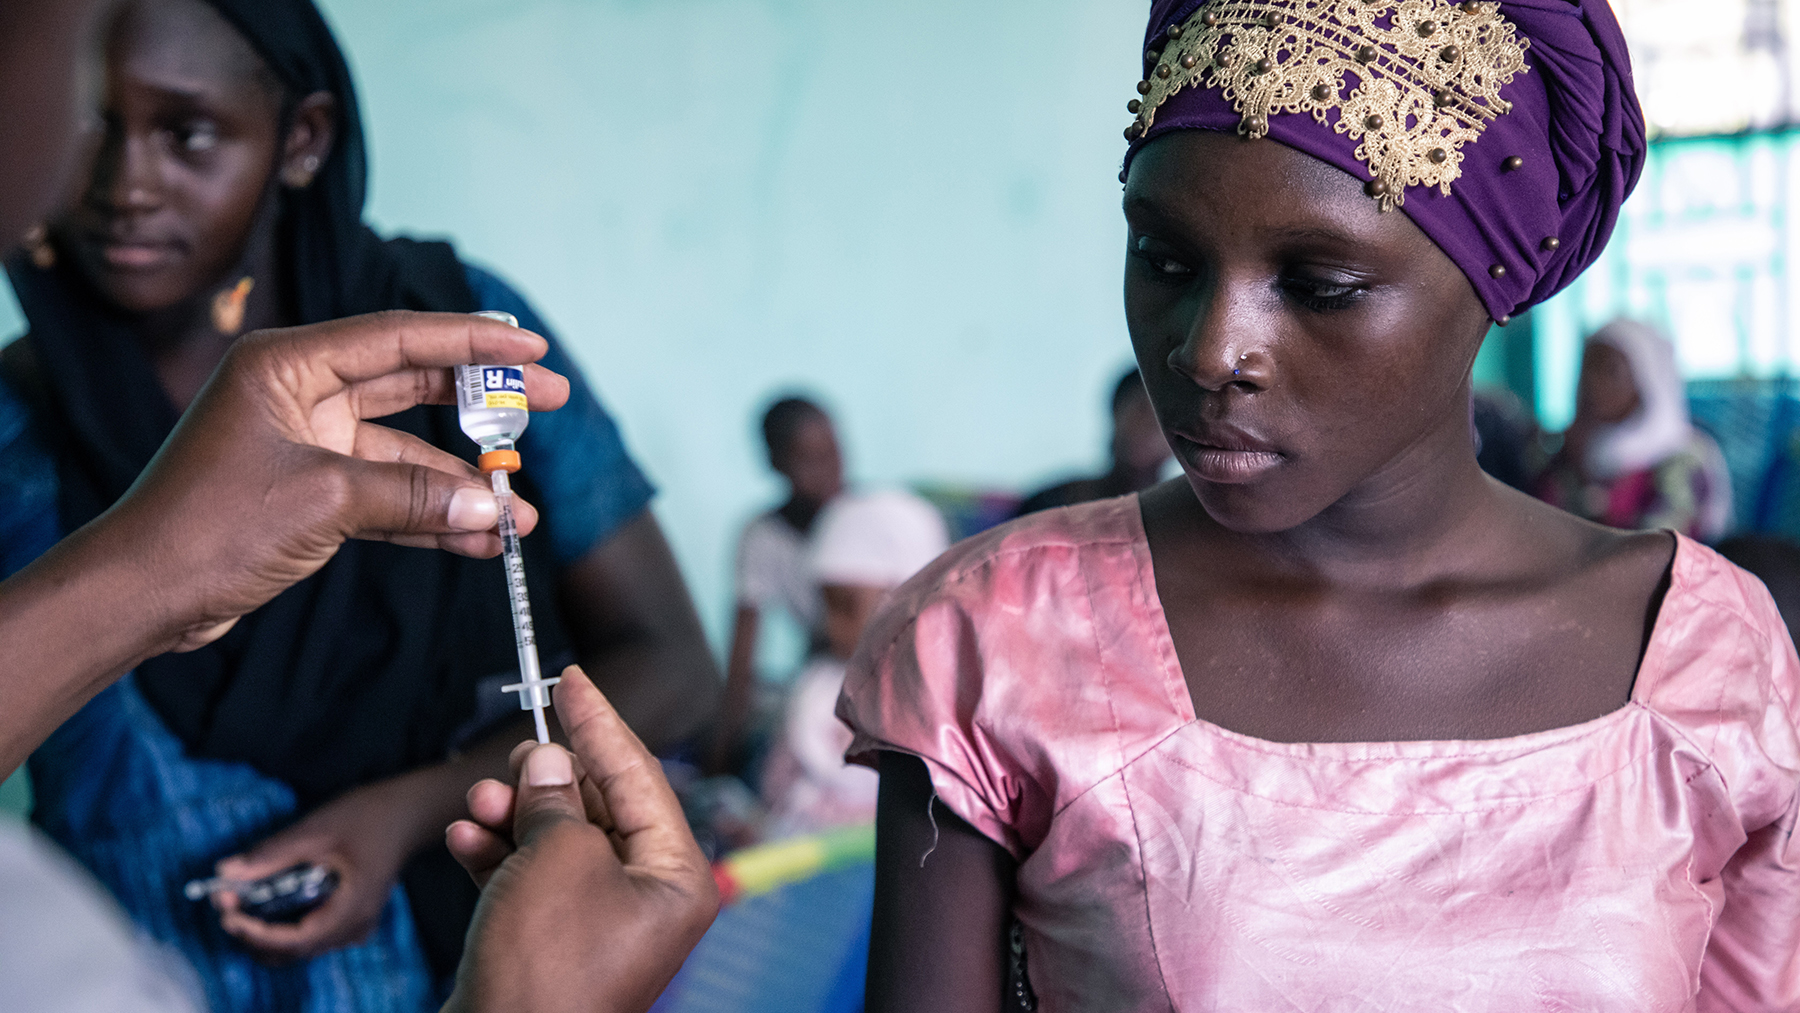 A young woman watches as a syringe is prepared during a diabetes education day in Bamako, Mali, pre-Covid. (Photo courtesy of Life for a Child)